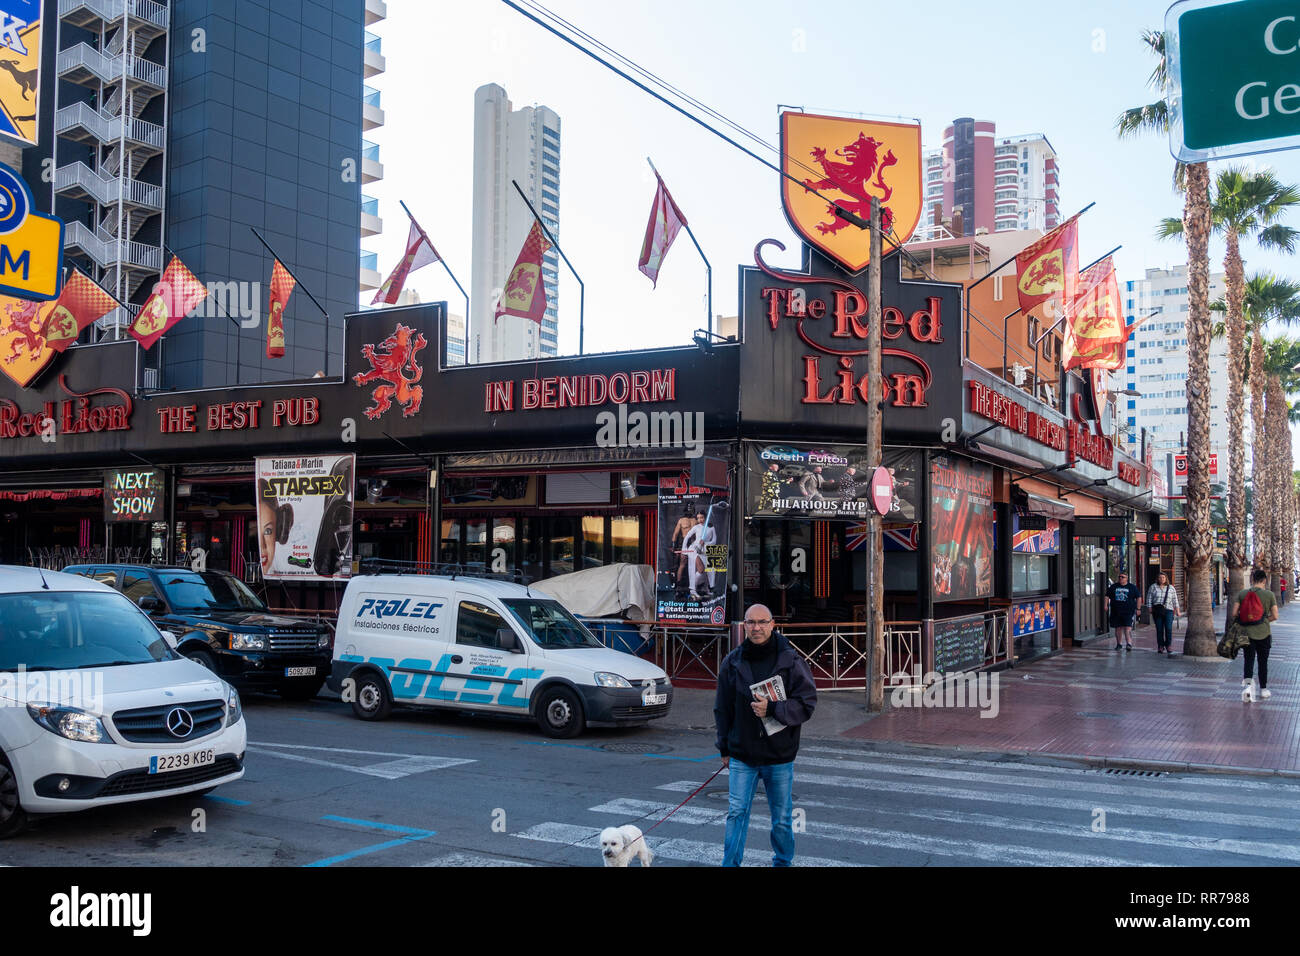 Benidorm, Costa Blanca, Spain, 25th February 2019. Two staff members at the Beachcomber pub in Benidorm New Town on the British square. Two British tourists have been arrested in relation to the alleged attack. Seen here is the Red Lion Pub which is not connected to the reported incident.  Credit: Mick Flynn/Alamy Live News Stock Photo